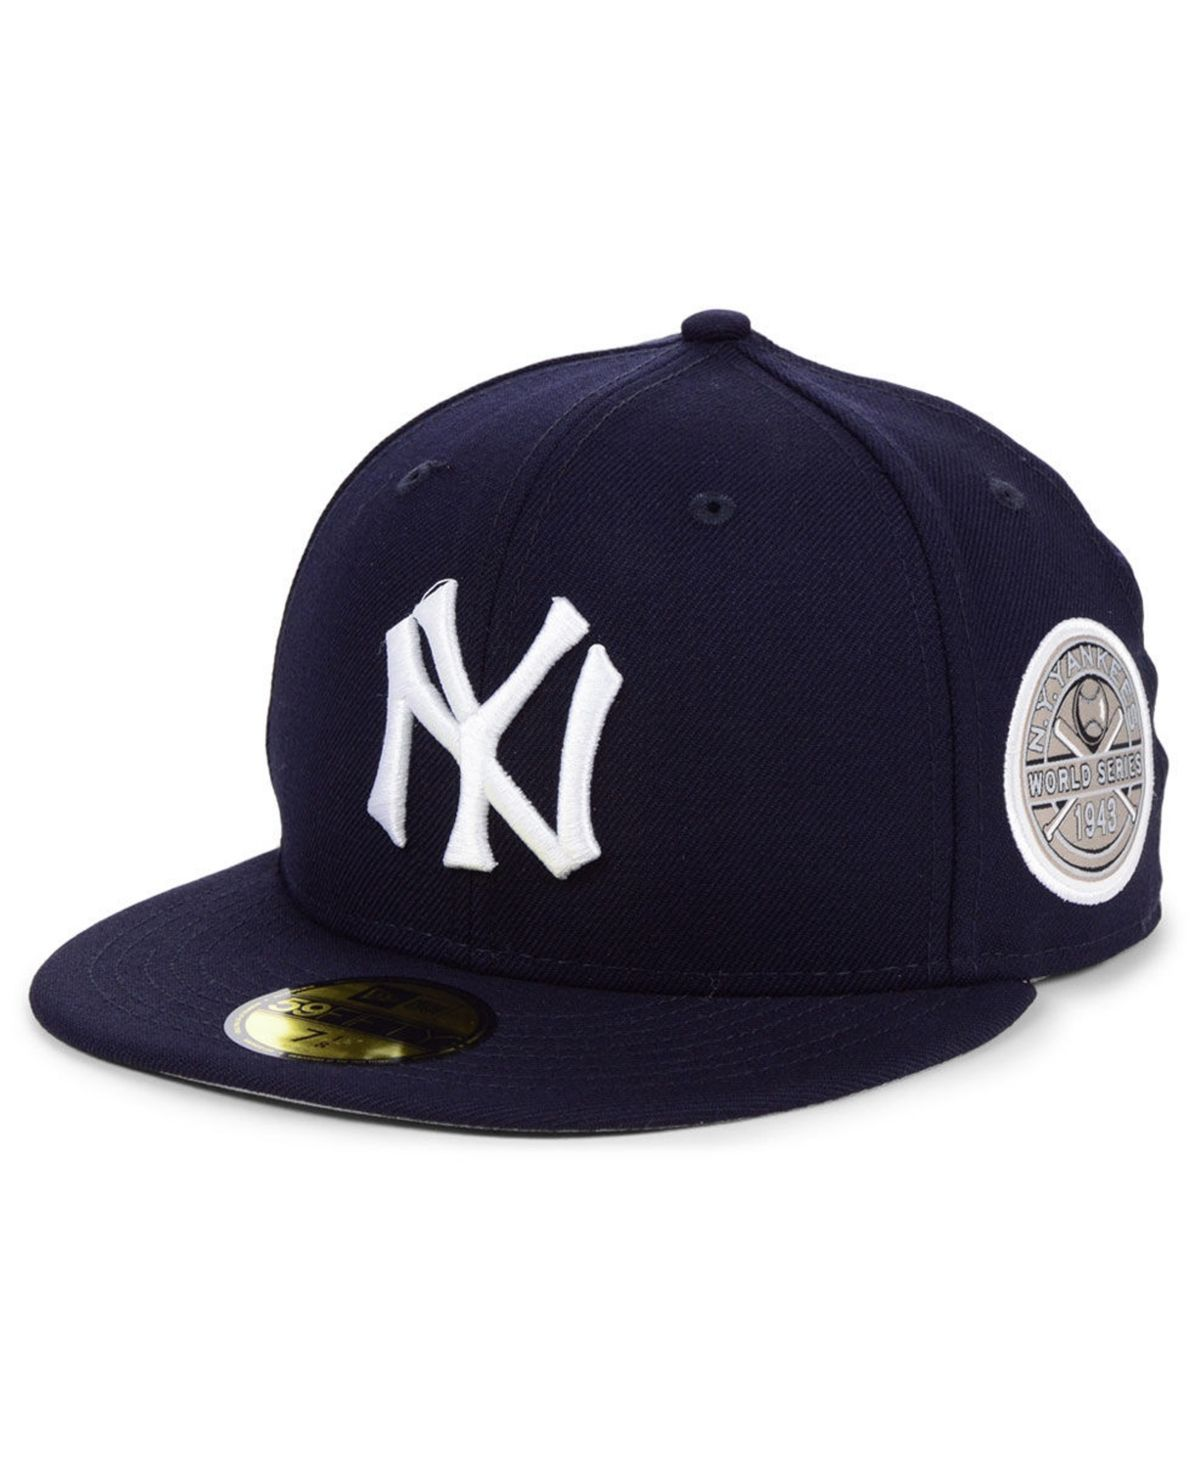 New Era New York Yankees World Series Patch 59fifty Fitted Cap Navy Navy Fitted Caps New Era Kids Shoes